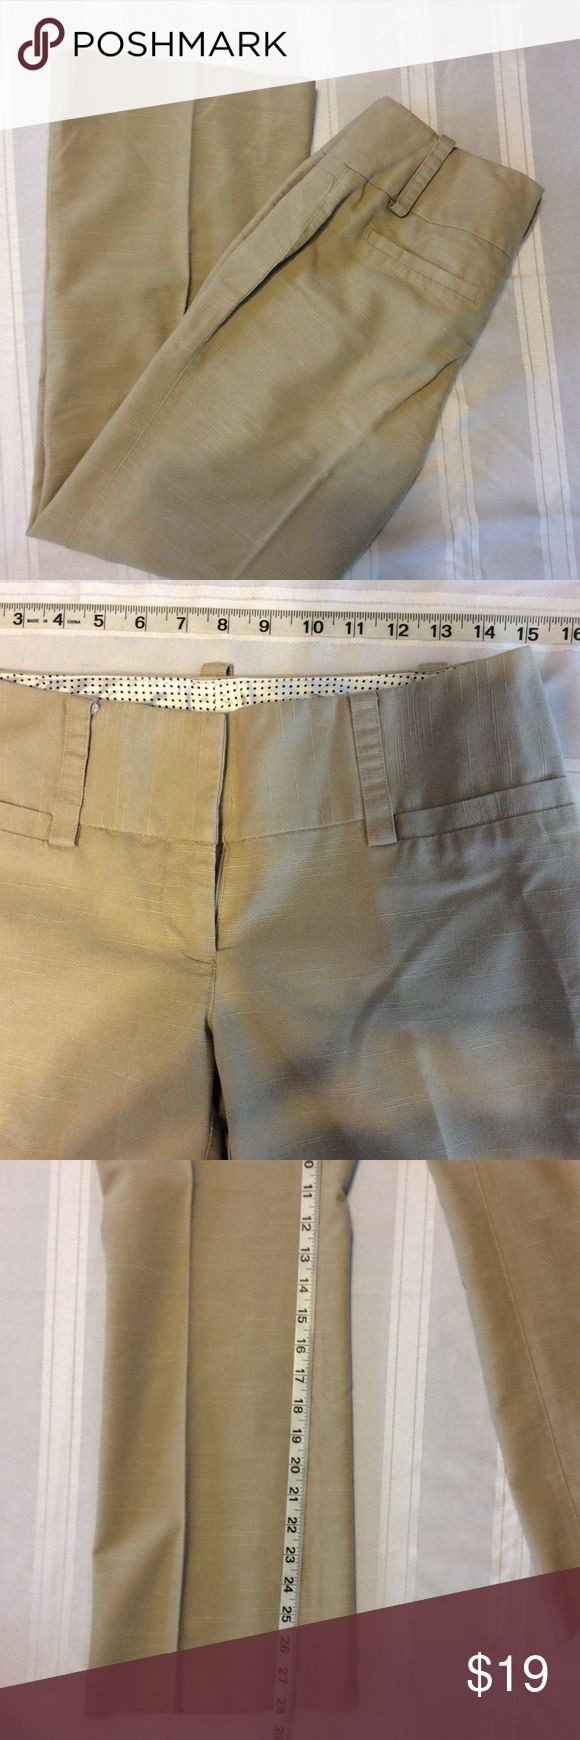 Maurices Womens Pants Size 1/2 Short Dress Career 100% money back guarantee, free returns and excellent customer service.  Your item will ship within 24 hours after payment is received (excluding weekends and Holidays)  Please let us know if you have any questions.   Maurices Womens I Am Smart Tan Dress Pants Size 1/2S Career Slacks   Location: AA6  Our items are all from a pet free, smoke free home.  Items are purchased locally or donated so we are not aware if they have formally been…